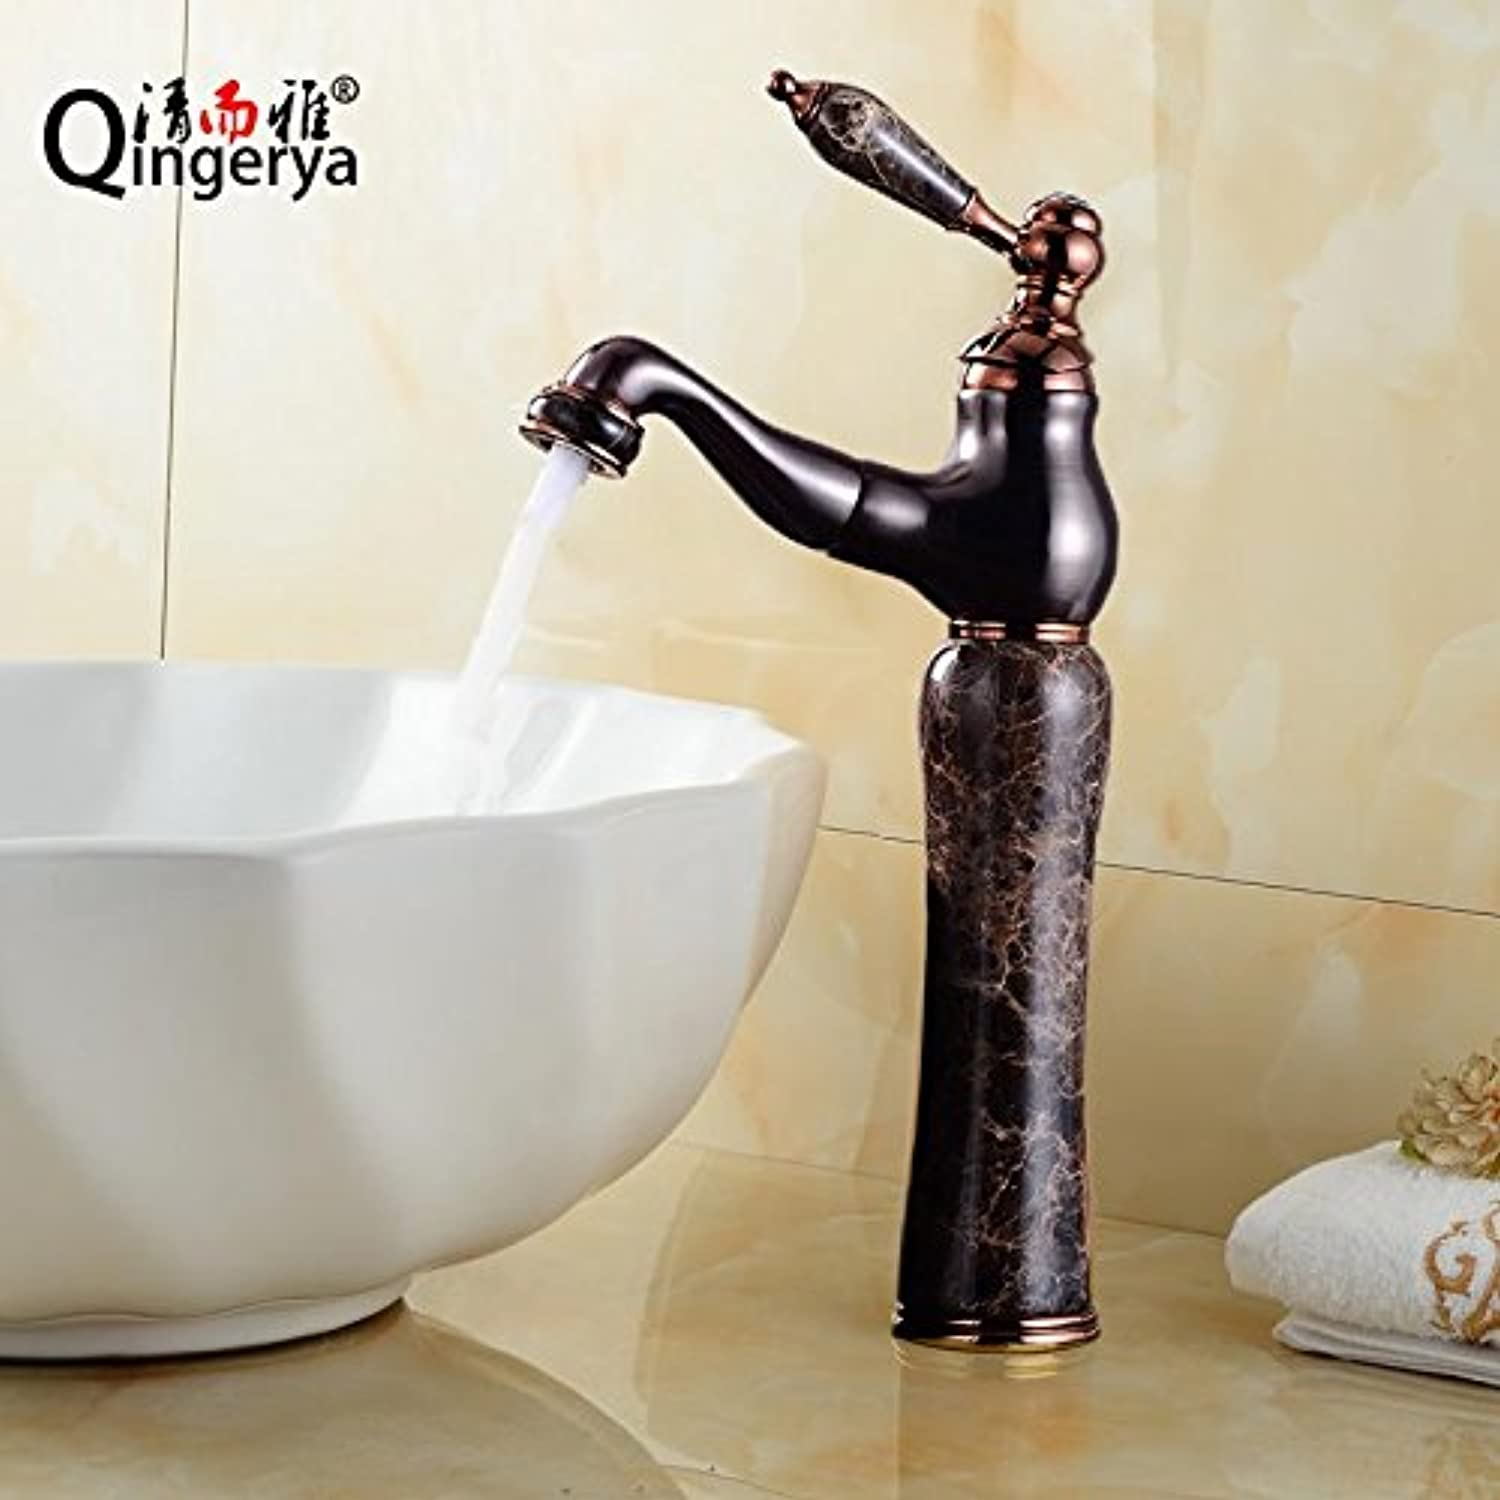 Pengei Tap Basin Mixer Kitchen Sink Mixer Faucet Copper Retractable Pull pink gold Can Be redated, Orp Coffee Jade High